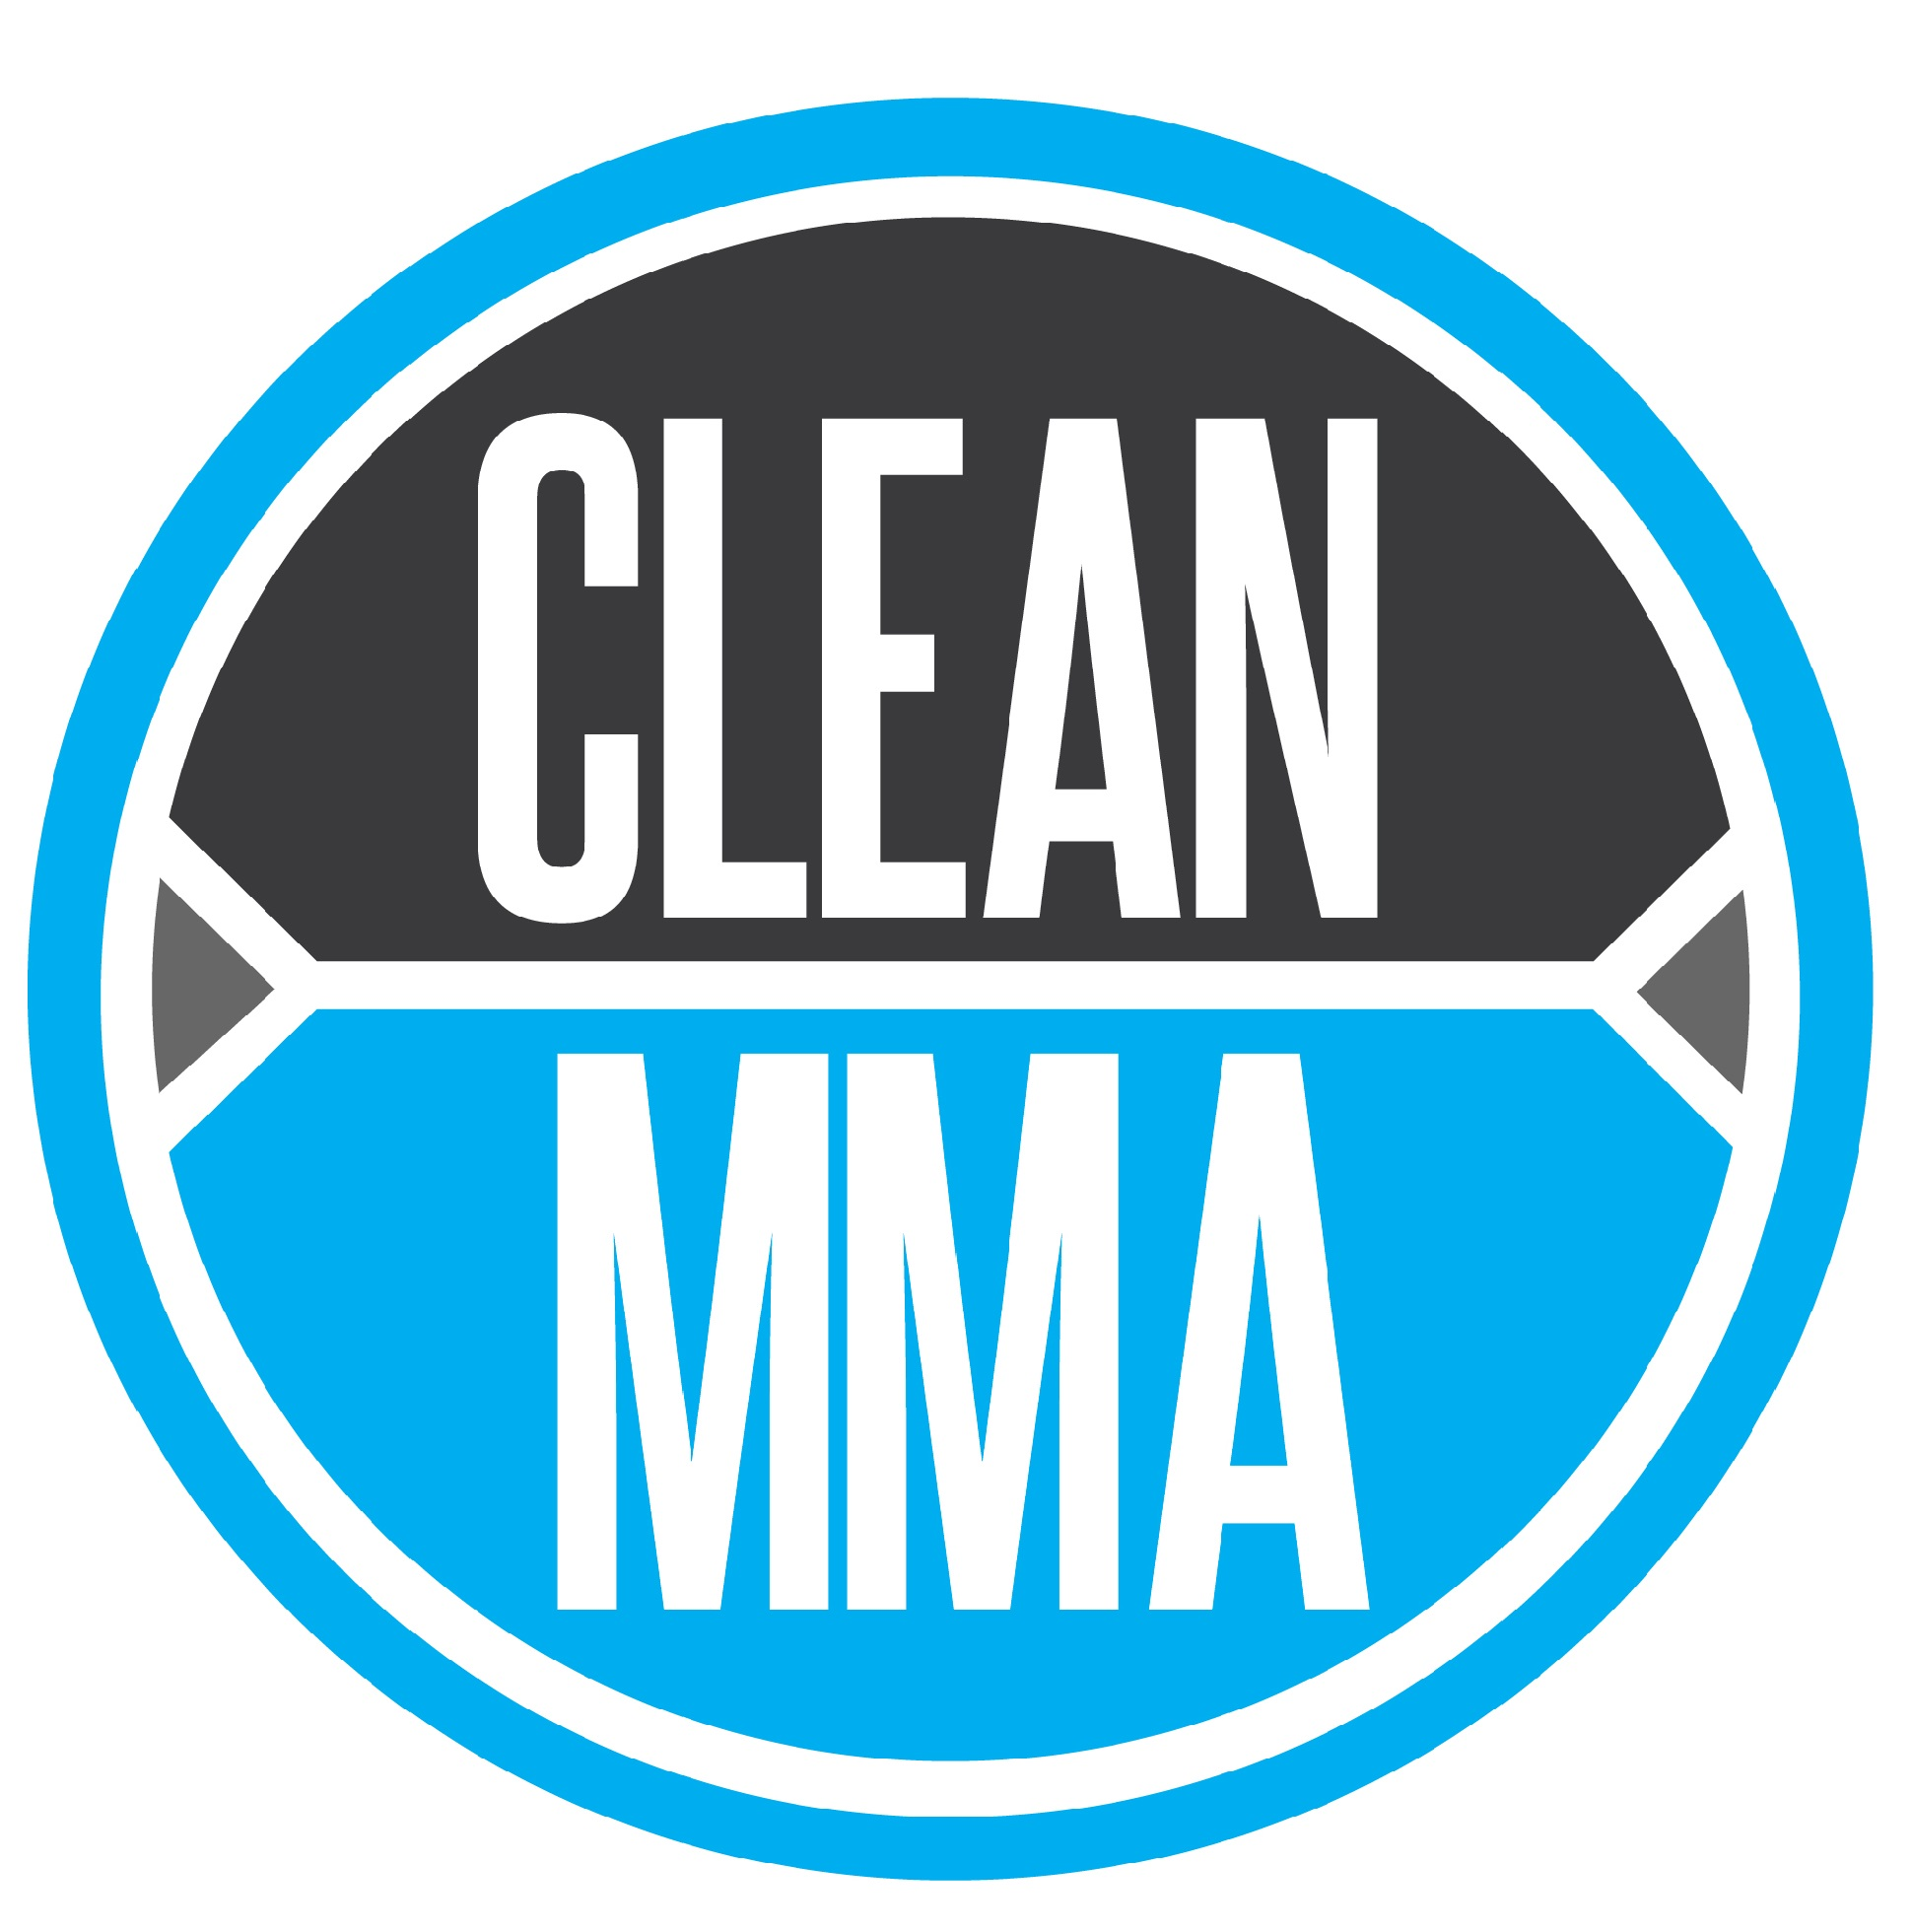 IMMAF Submits WADA Application for Mixed Martial Arts (MMA)